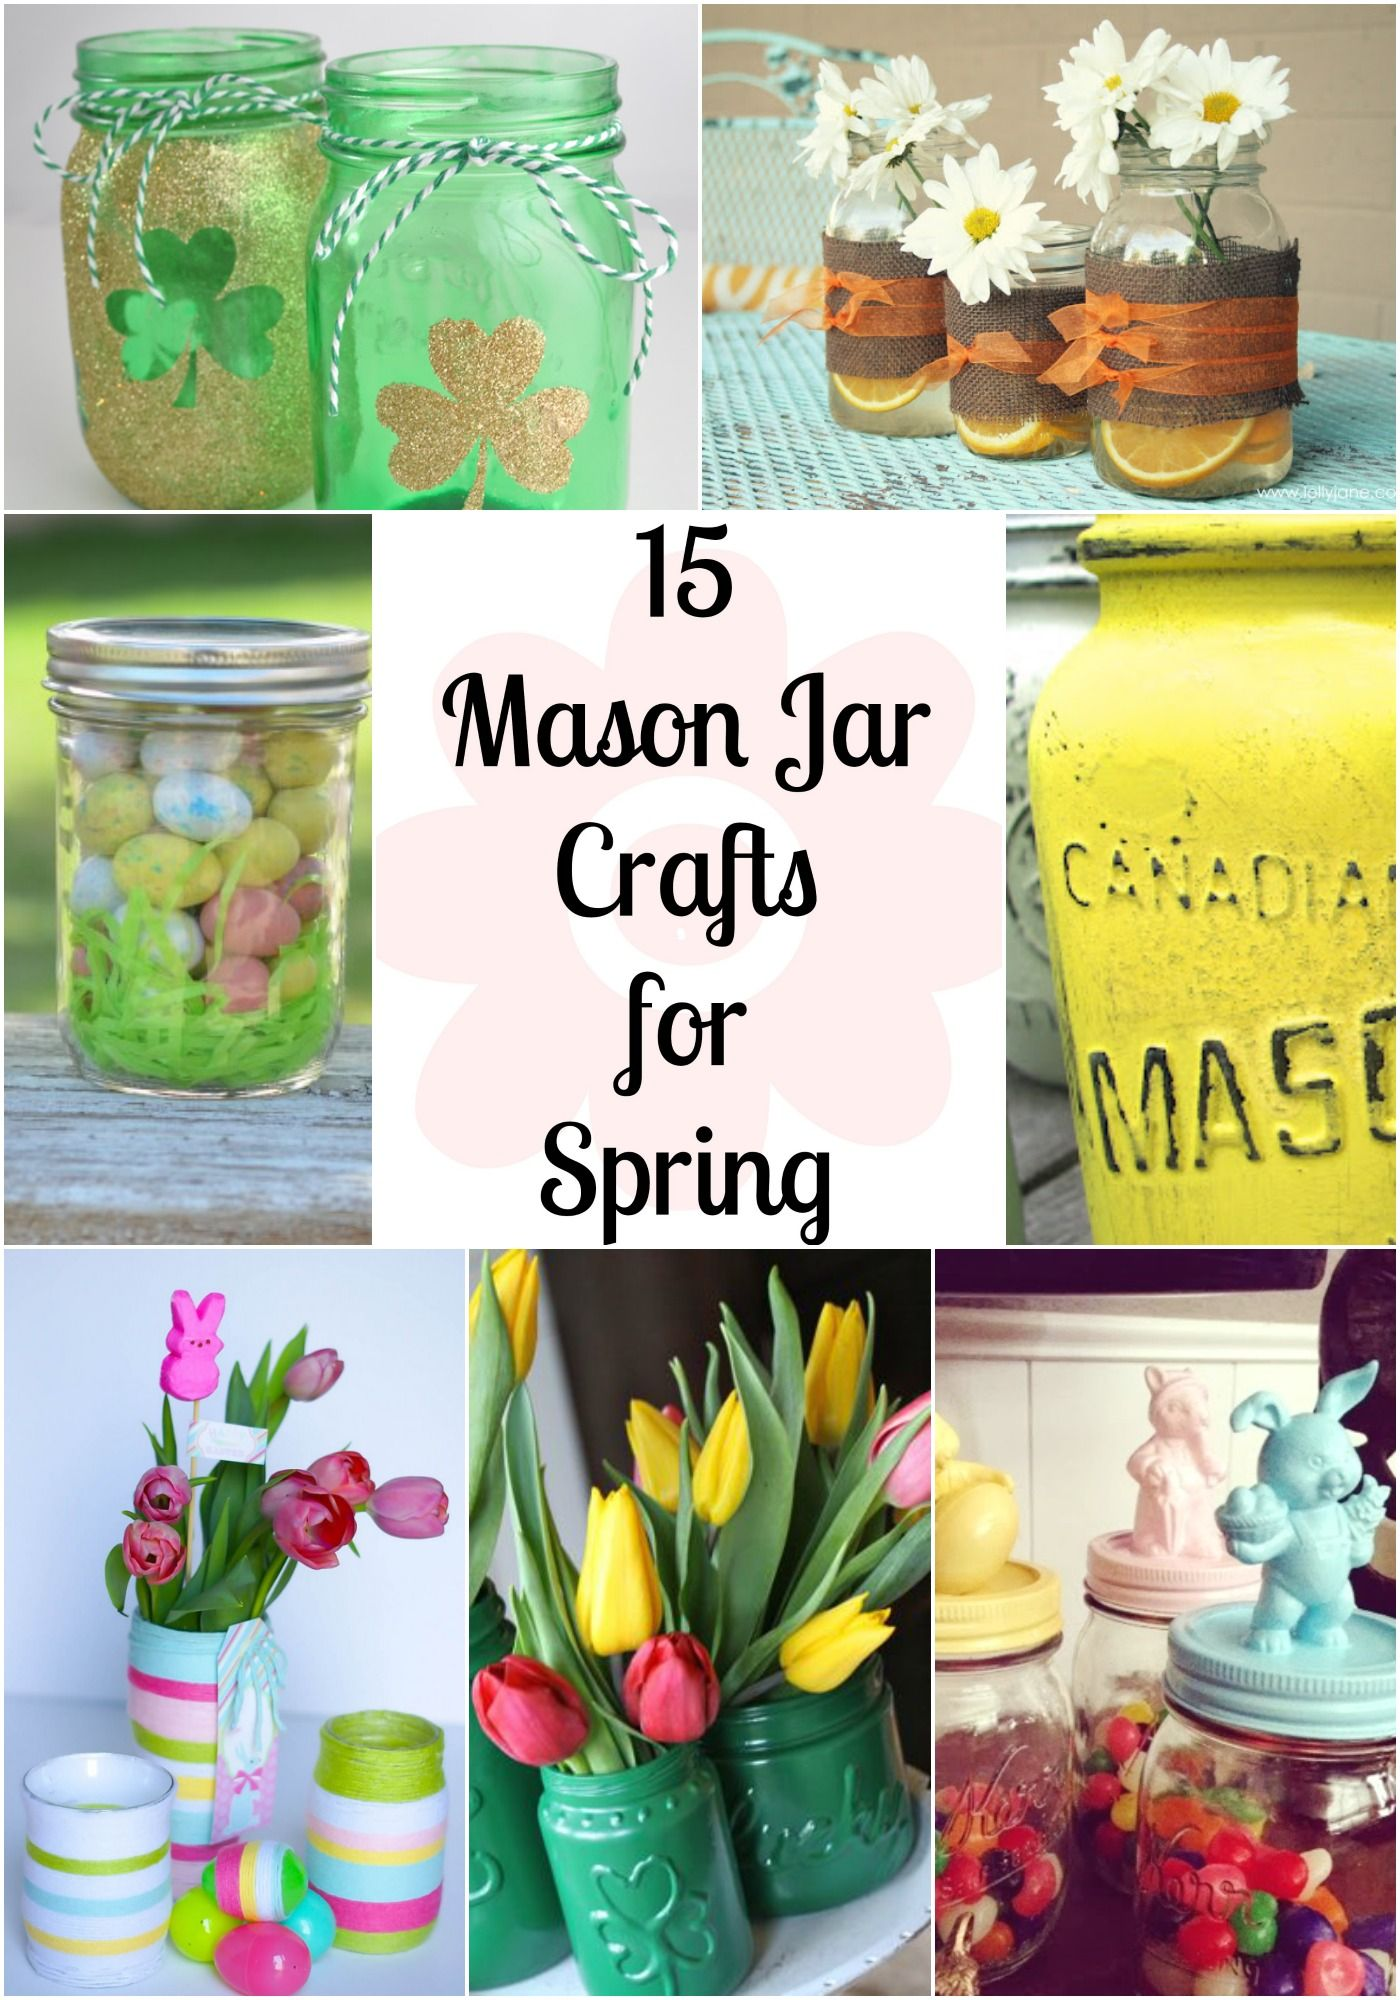 15 Mason Jar Crafts For Spring Clever Pink Pirate Easy Mason Jar Crafts Jar Crafts Mason Jar Fun